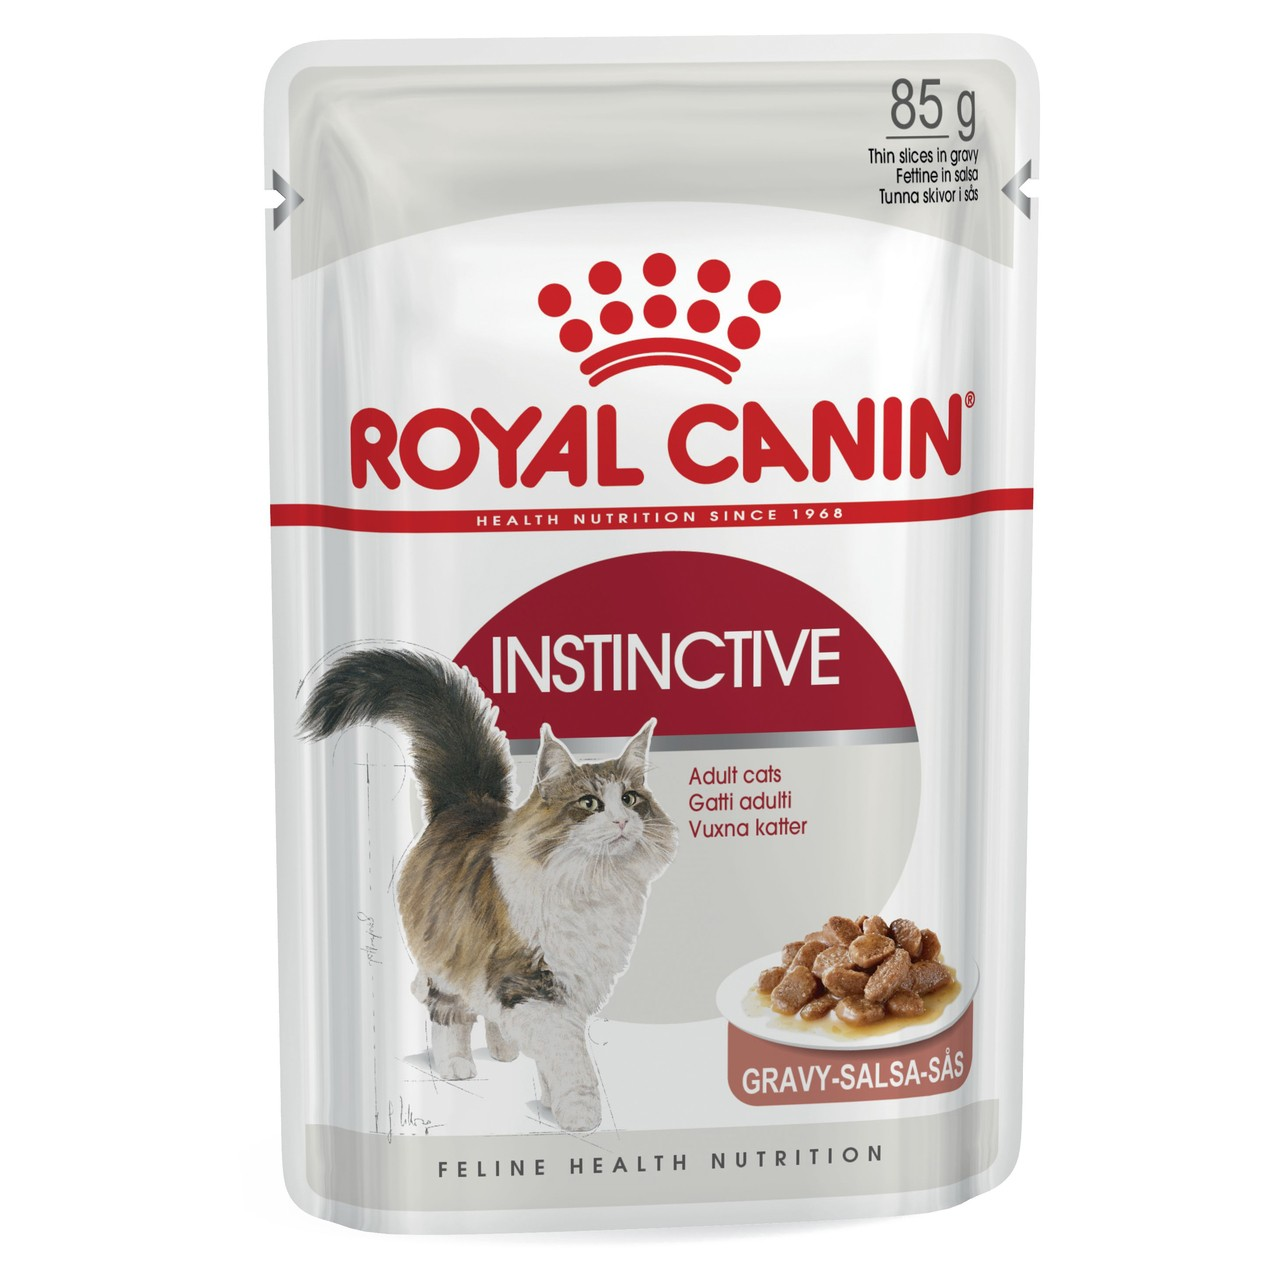 Royal Canin Wet Food